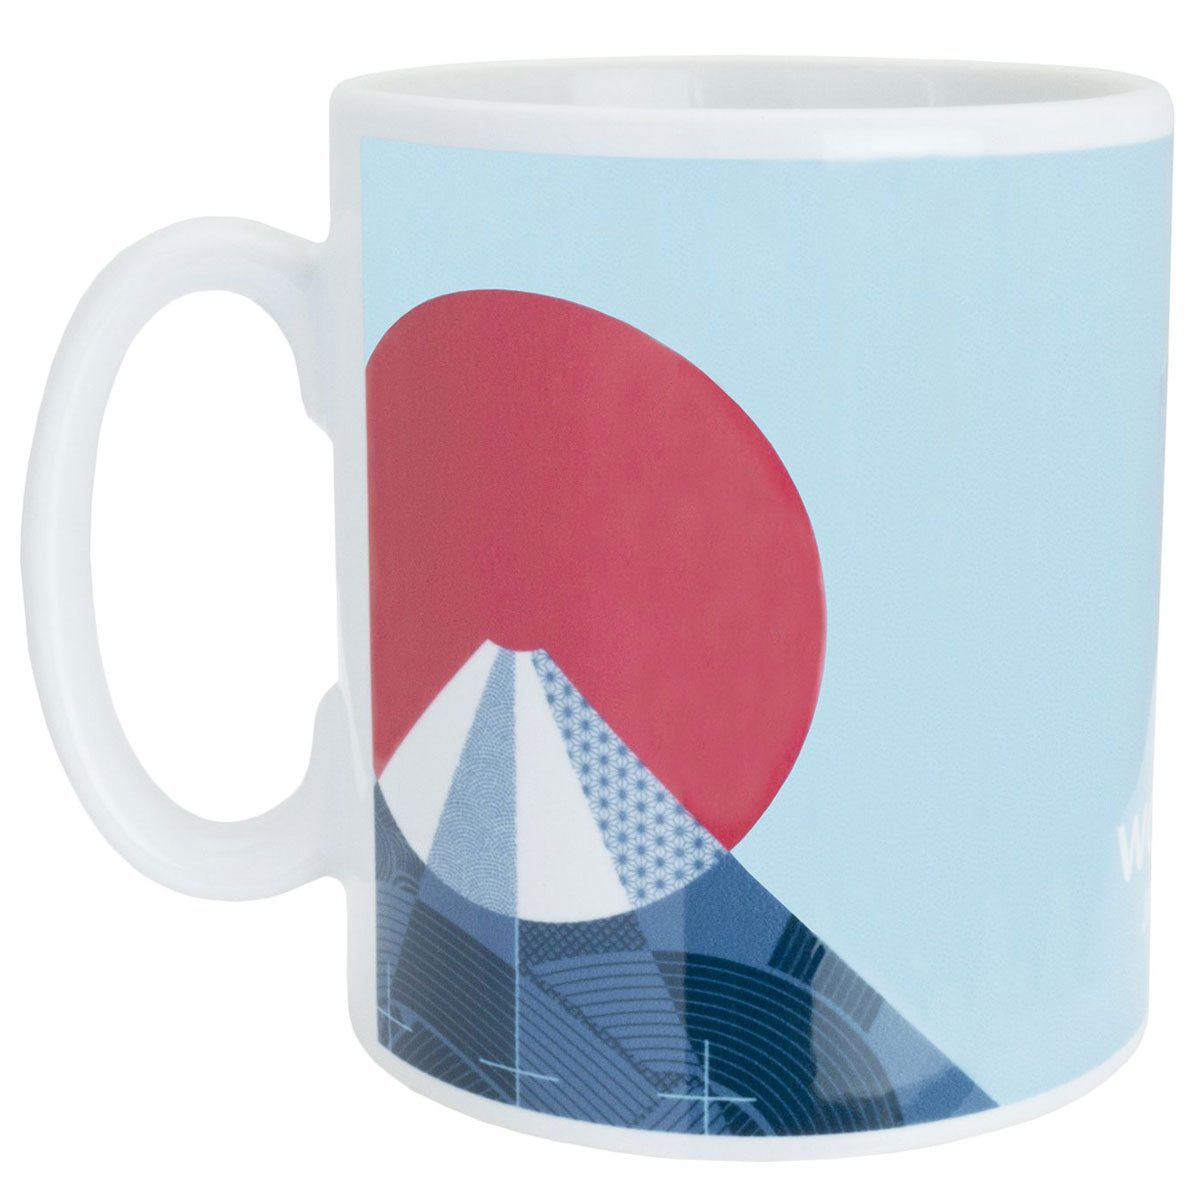 Rugby World Cup 2019 Logo Mug